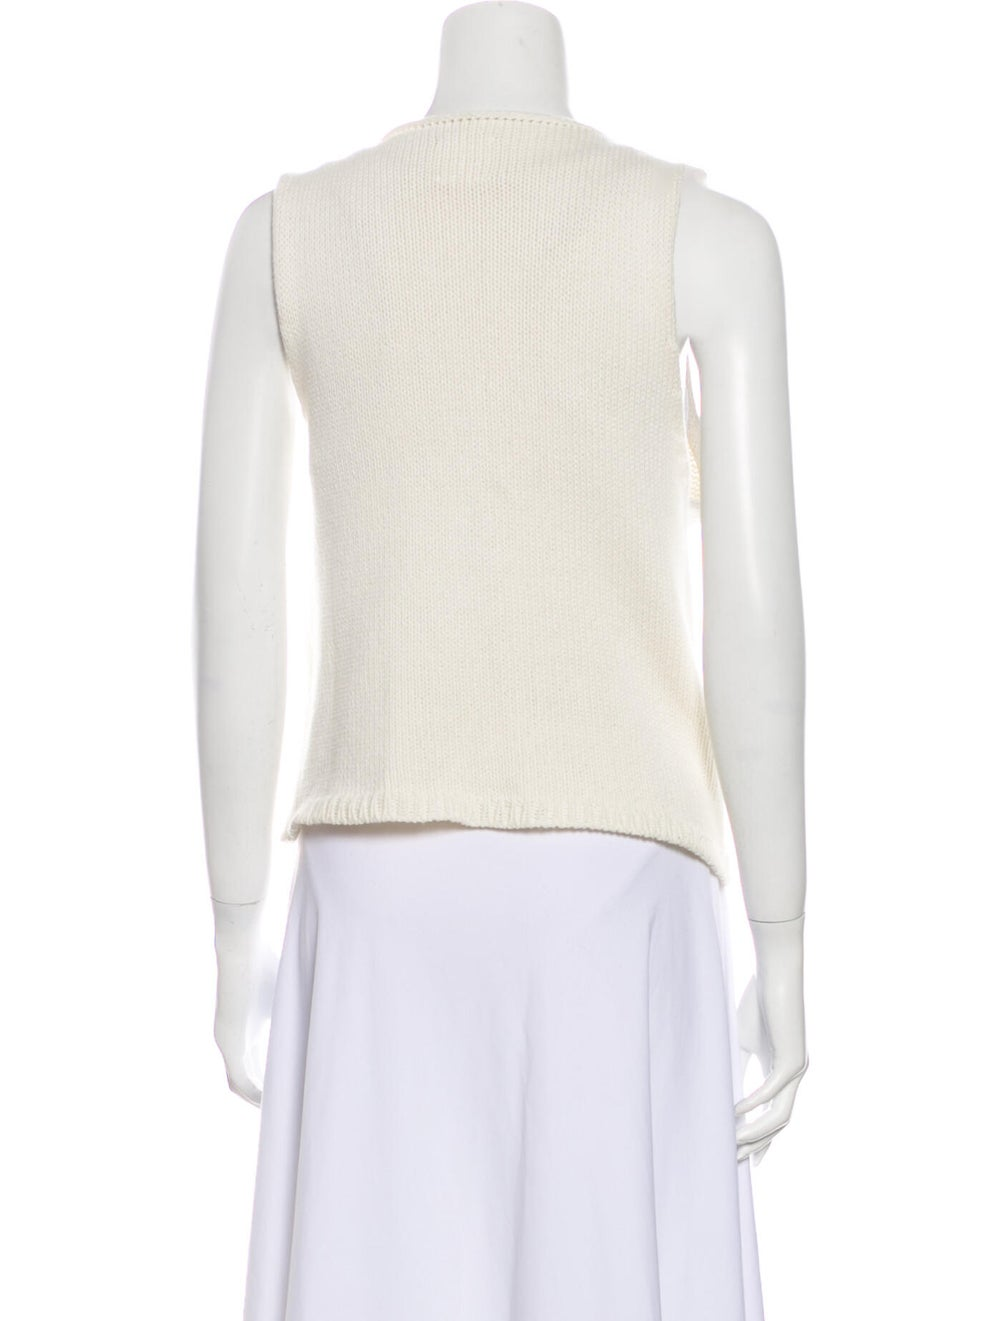 Anine Bing V-Neck Sweater - image 3